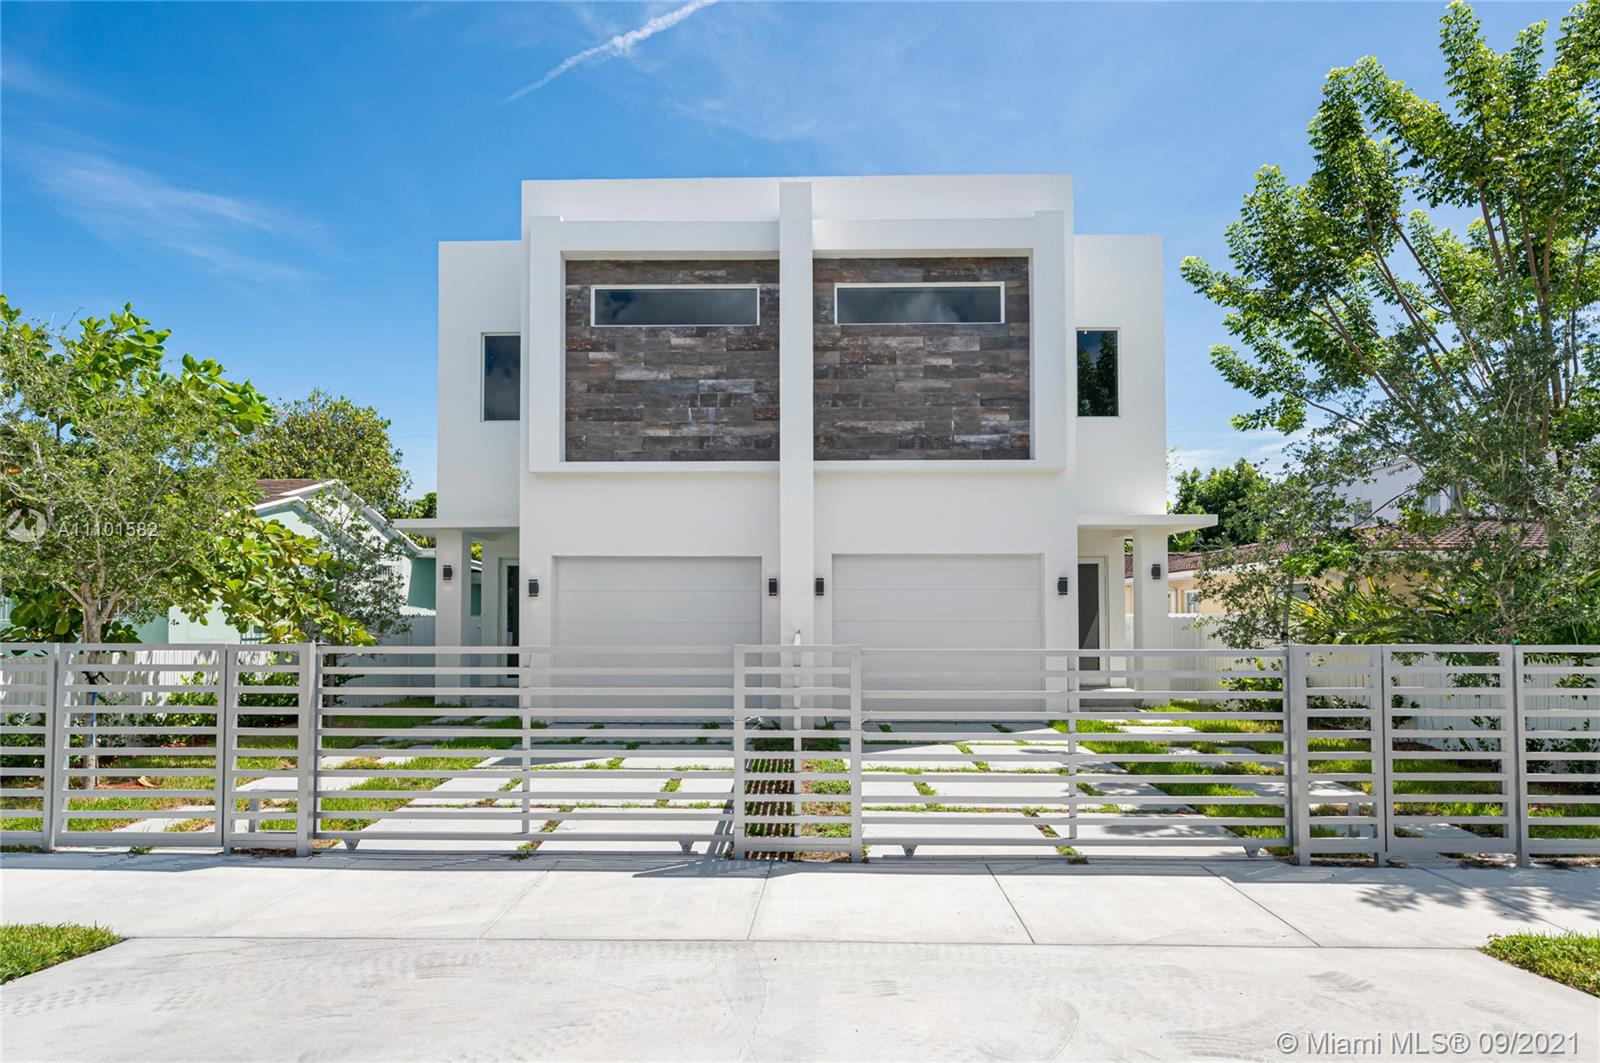 Modern New Construction Duplex/Townhouse in a prime location. The property features two open concept units. Each unit includes 3 bedrooms and 4 full baths, a car garage, and ceramic tile floors. The ample downstairs space invites to entertain; there is a living room, dining with an integrated kitchen, family room, and a full bath/cabana leading to the pool. The kitchen is fully equipped with Samsung Smart appliances, quartz countertops, and European cabinetry. Full bath/cabana. Sculptured ceilings with recessed led lights and speakers completes the first floor. Upstairs there are three well-sized en-suite bedrooms and a laundry room. The master bedroom features a walk-in closet and a master bath with an all marble, fully glass-enclosed shower with hydro jets, and a separate bathtub.